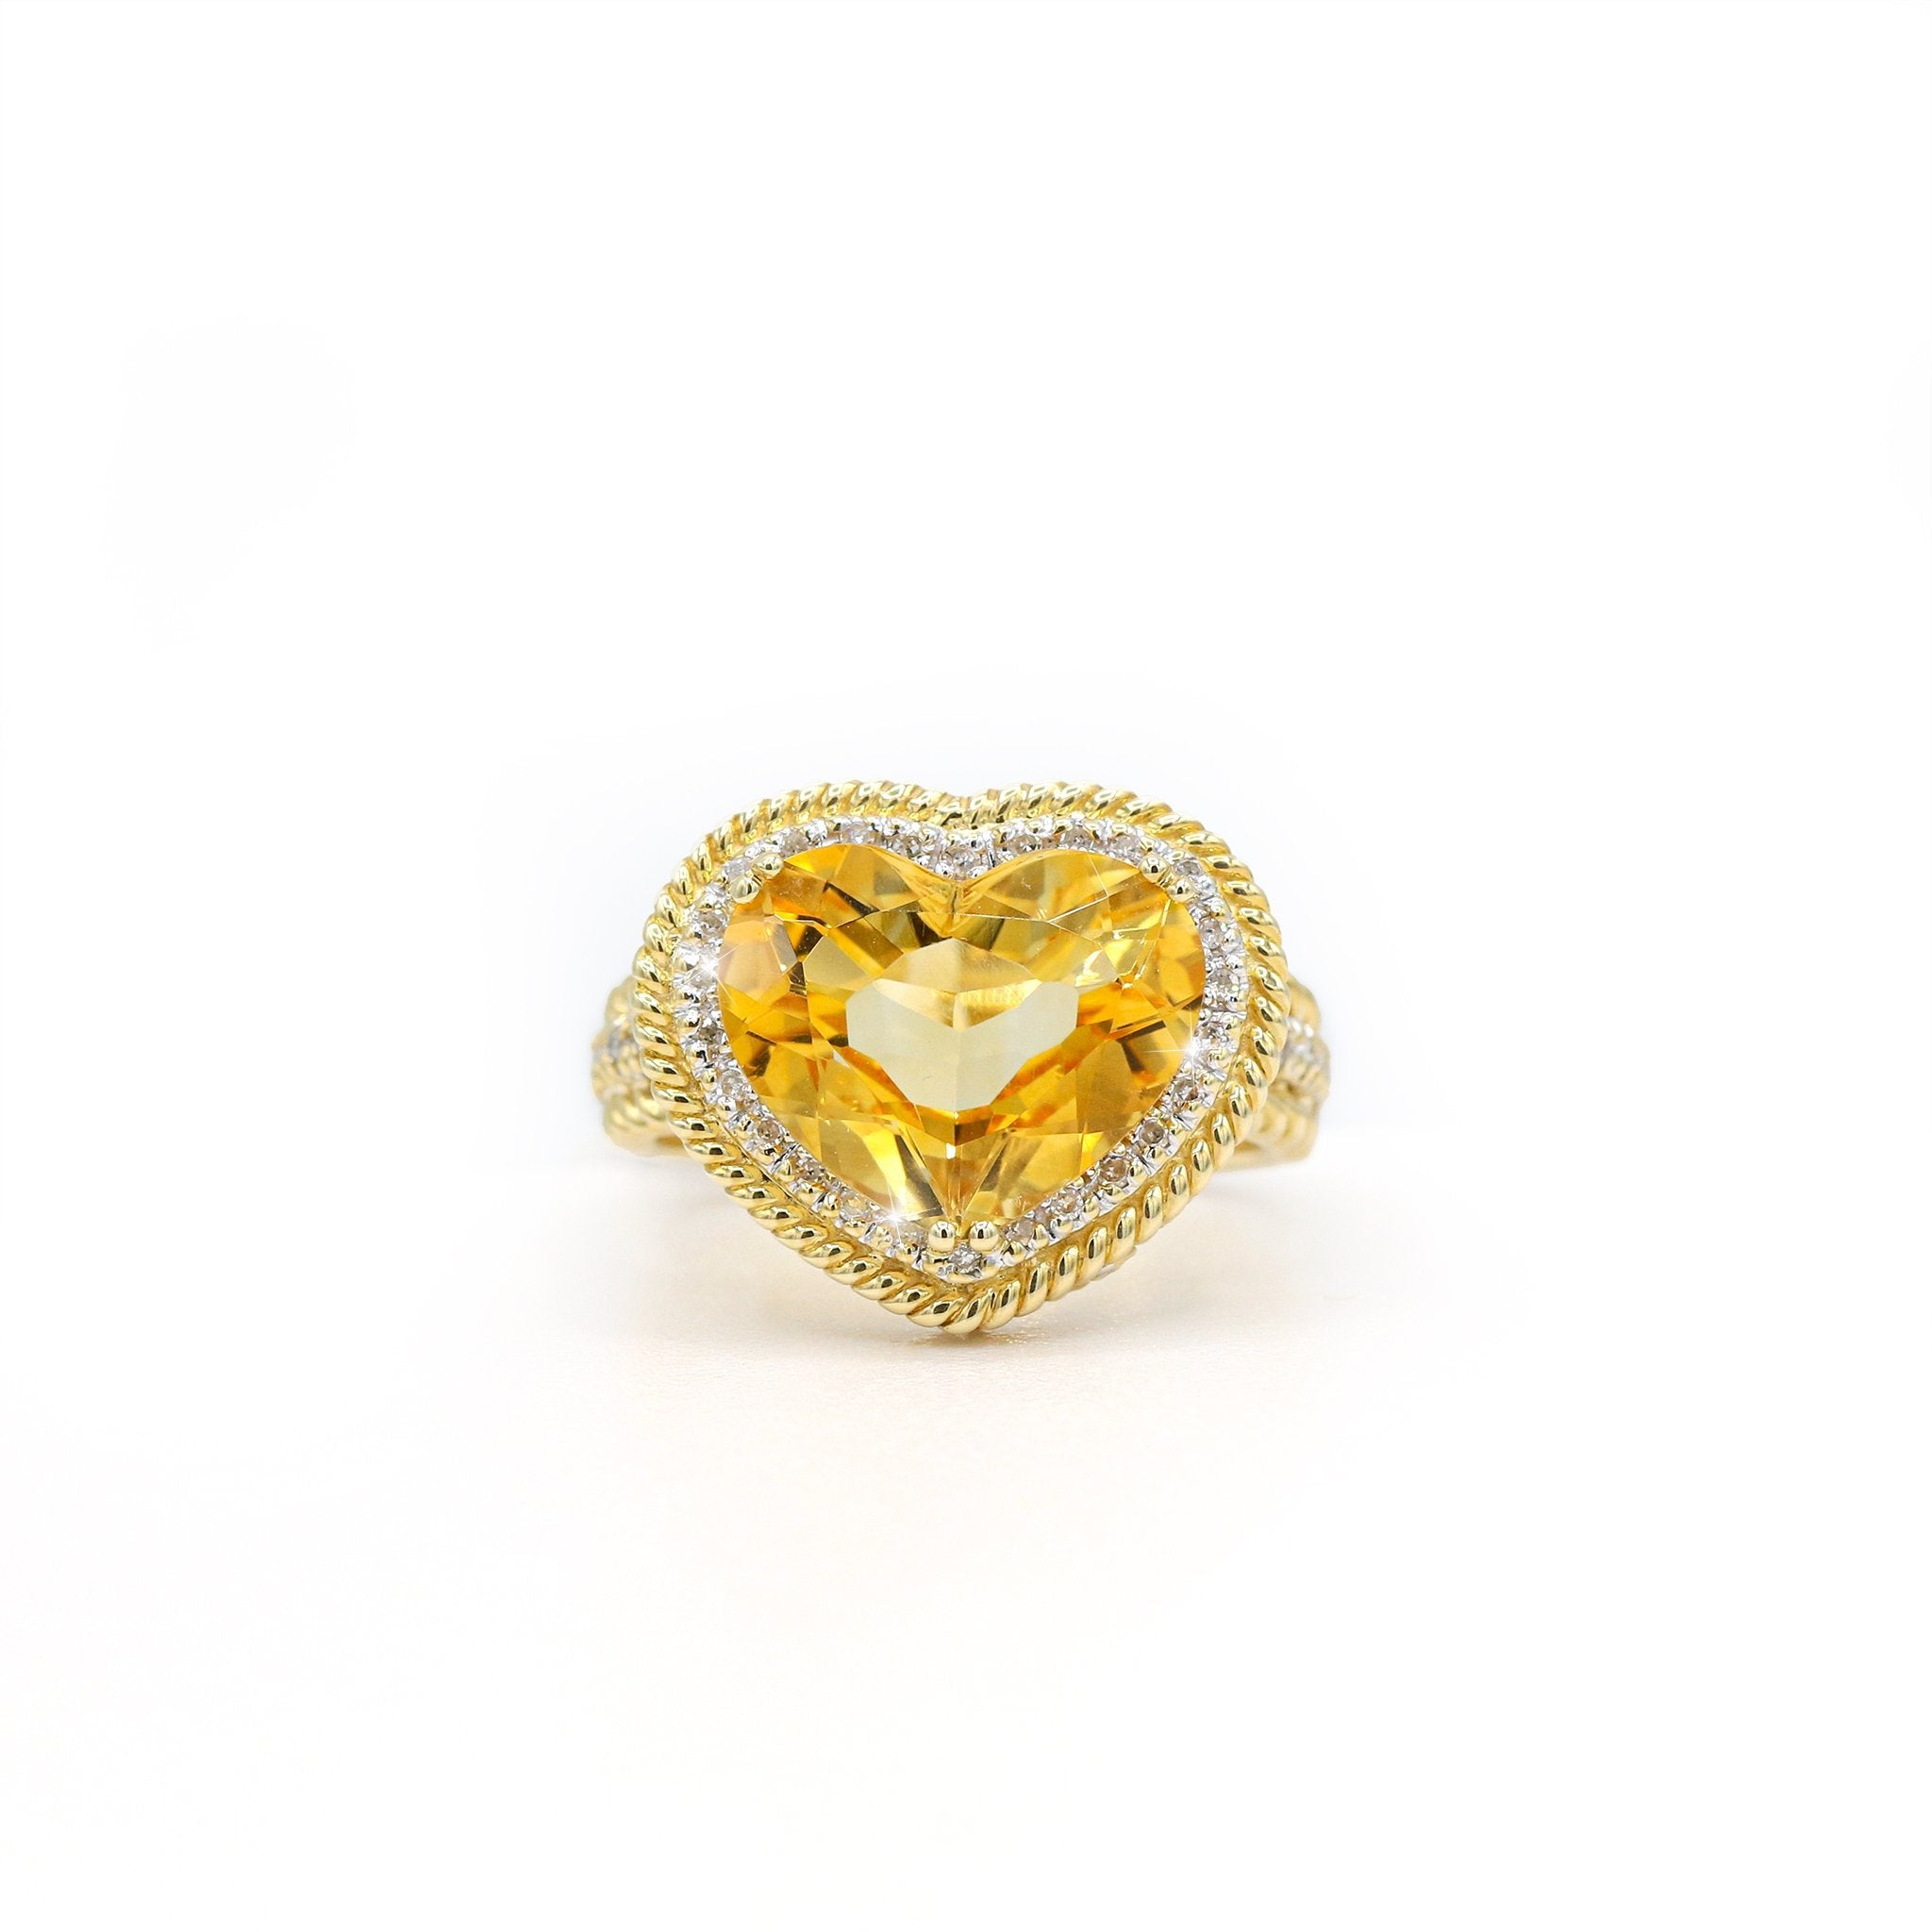 Adorned 14K Yellow Gold Heart Shaped Citrine Diamond Ring (0.18ct Carat Diamond Weight, 6.50ct Citrine Stone Weight)